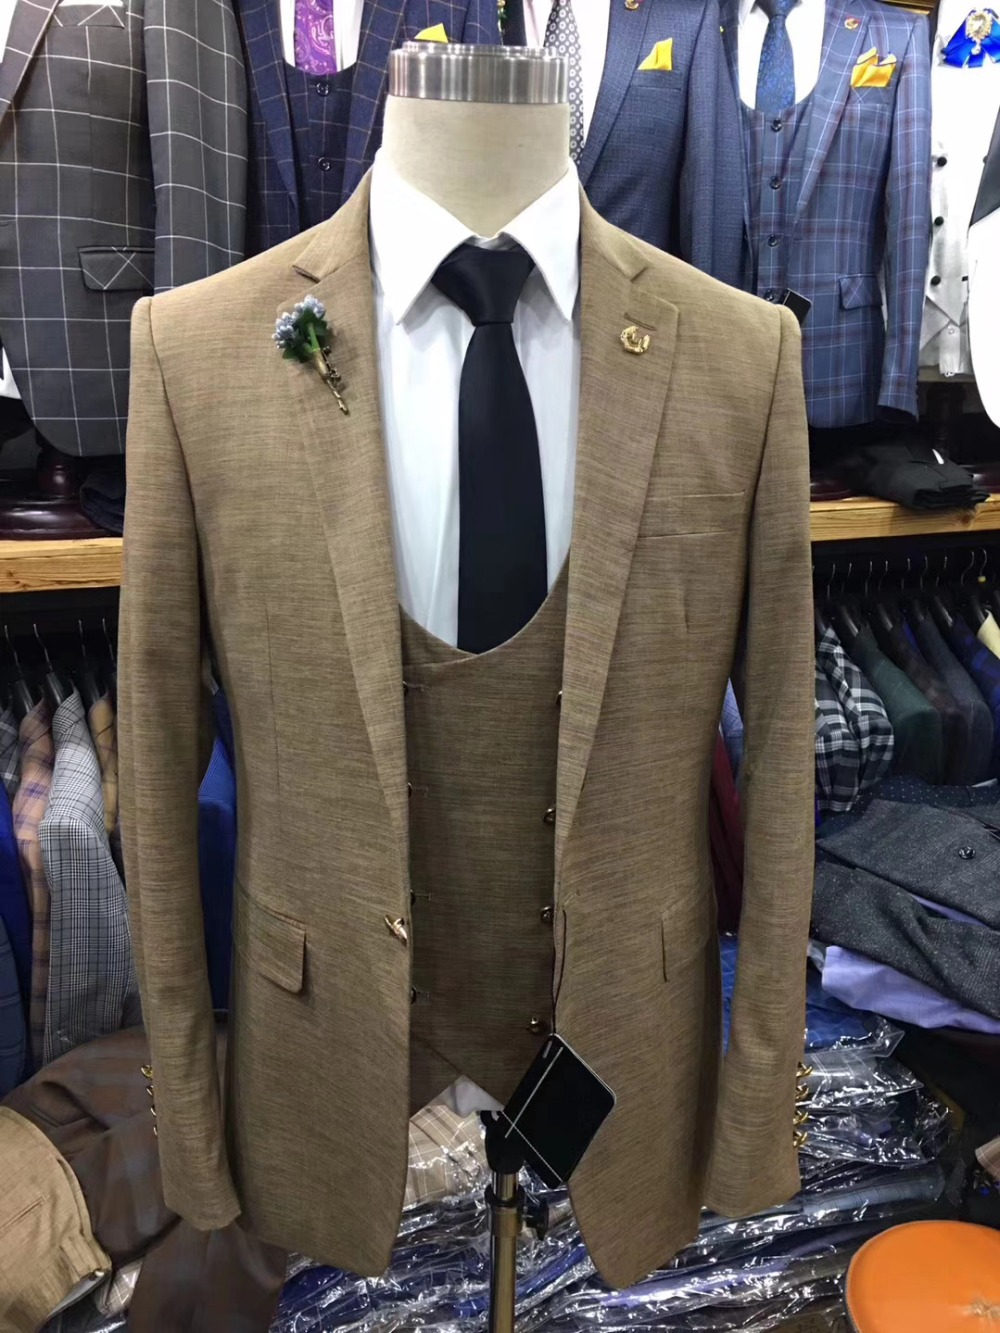 Black-Slim-Fit-Tuxedos-Groom-Wedding-Suits-For-Men-New-Design-Fashion-Formal-Party-Prom-Male (3)